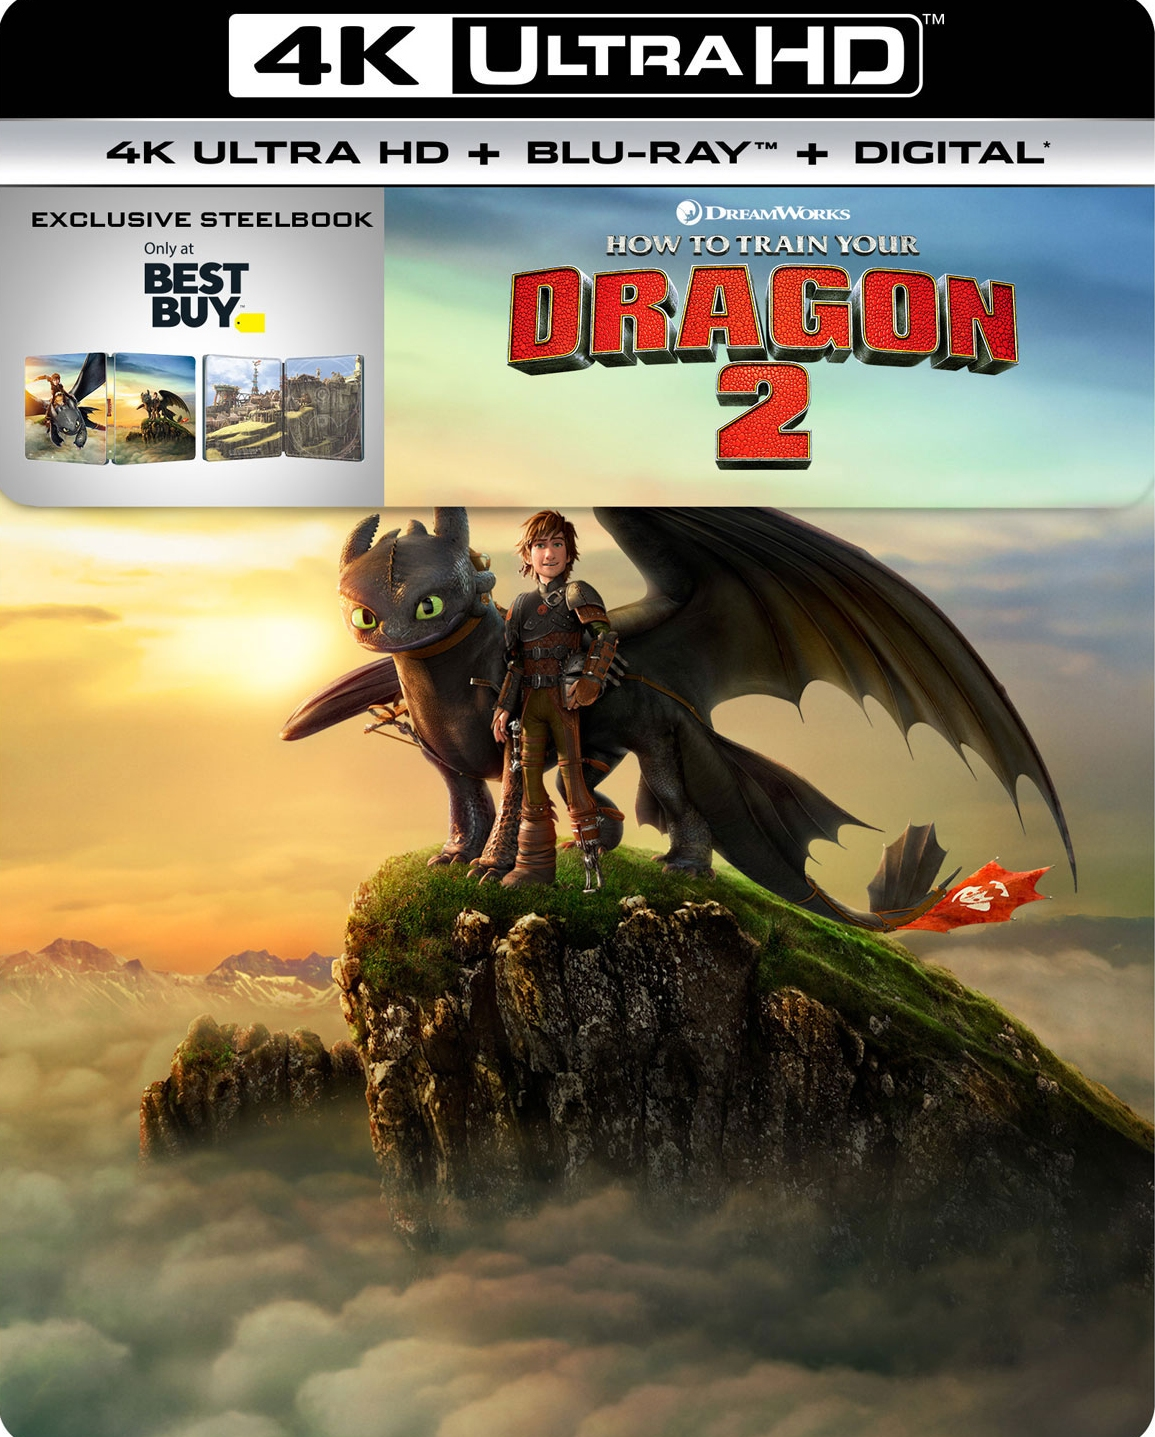 How to Train Your Dragon 2 UHD SteelBook